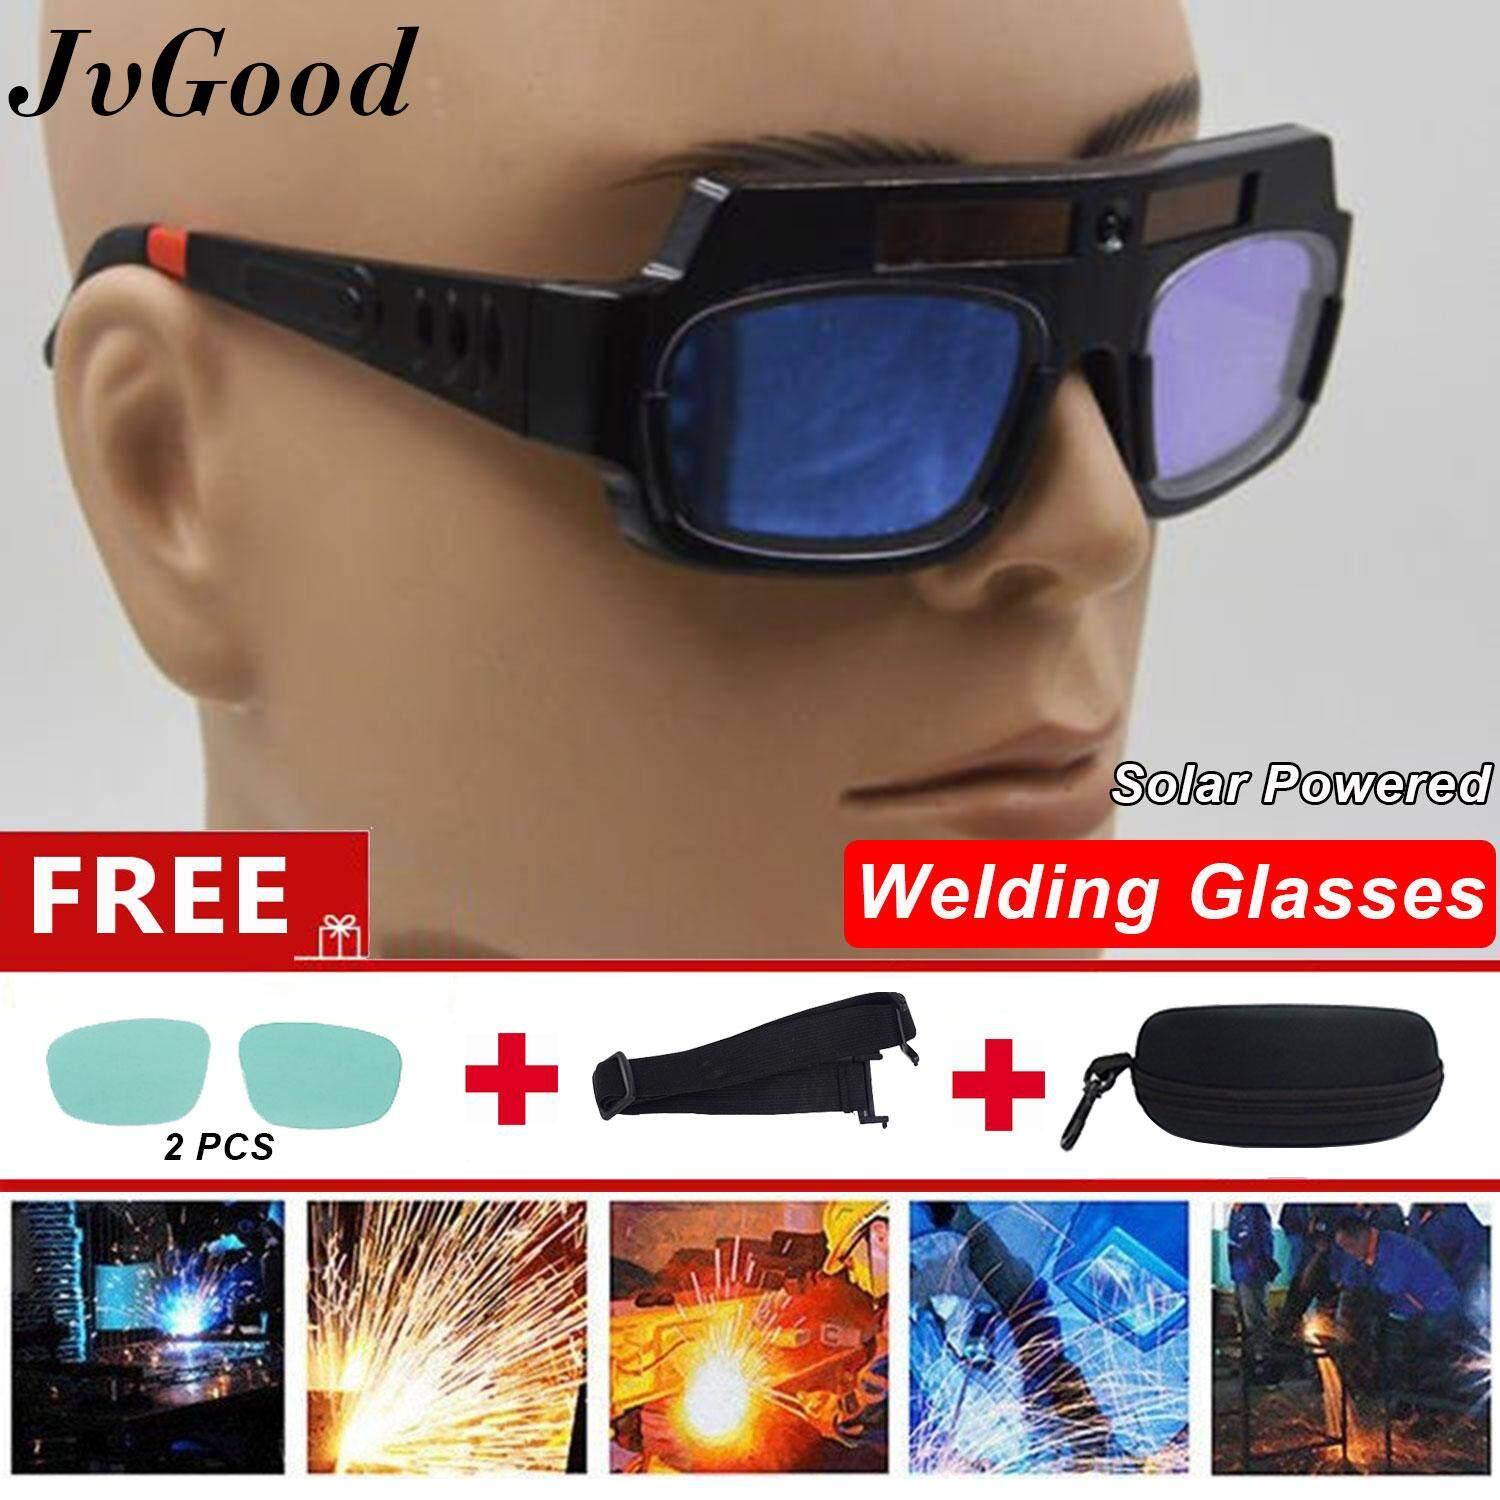 JvGood Solar Powered Safety Goggles Welding Glasses Eye Protection Glasses Eyes Goggles Welder Glasses Auto Darkening